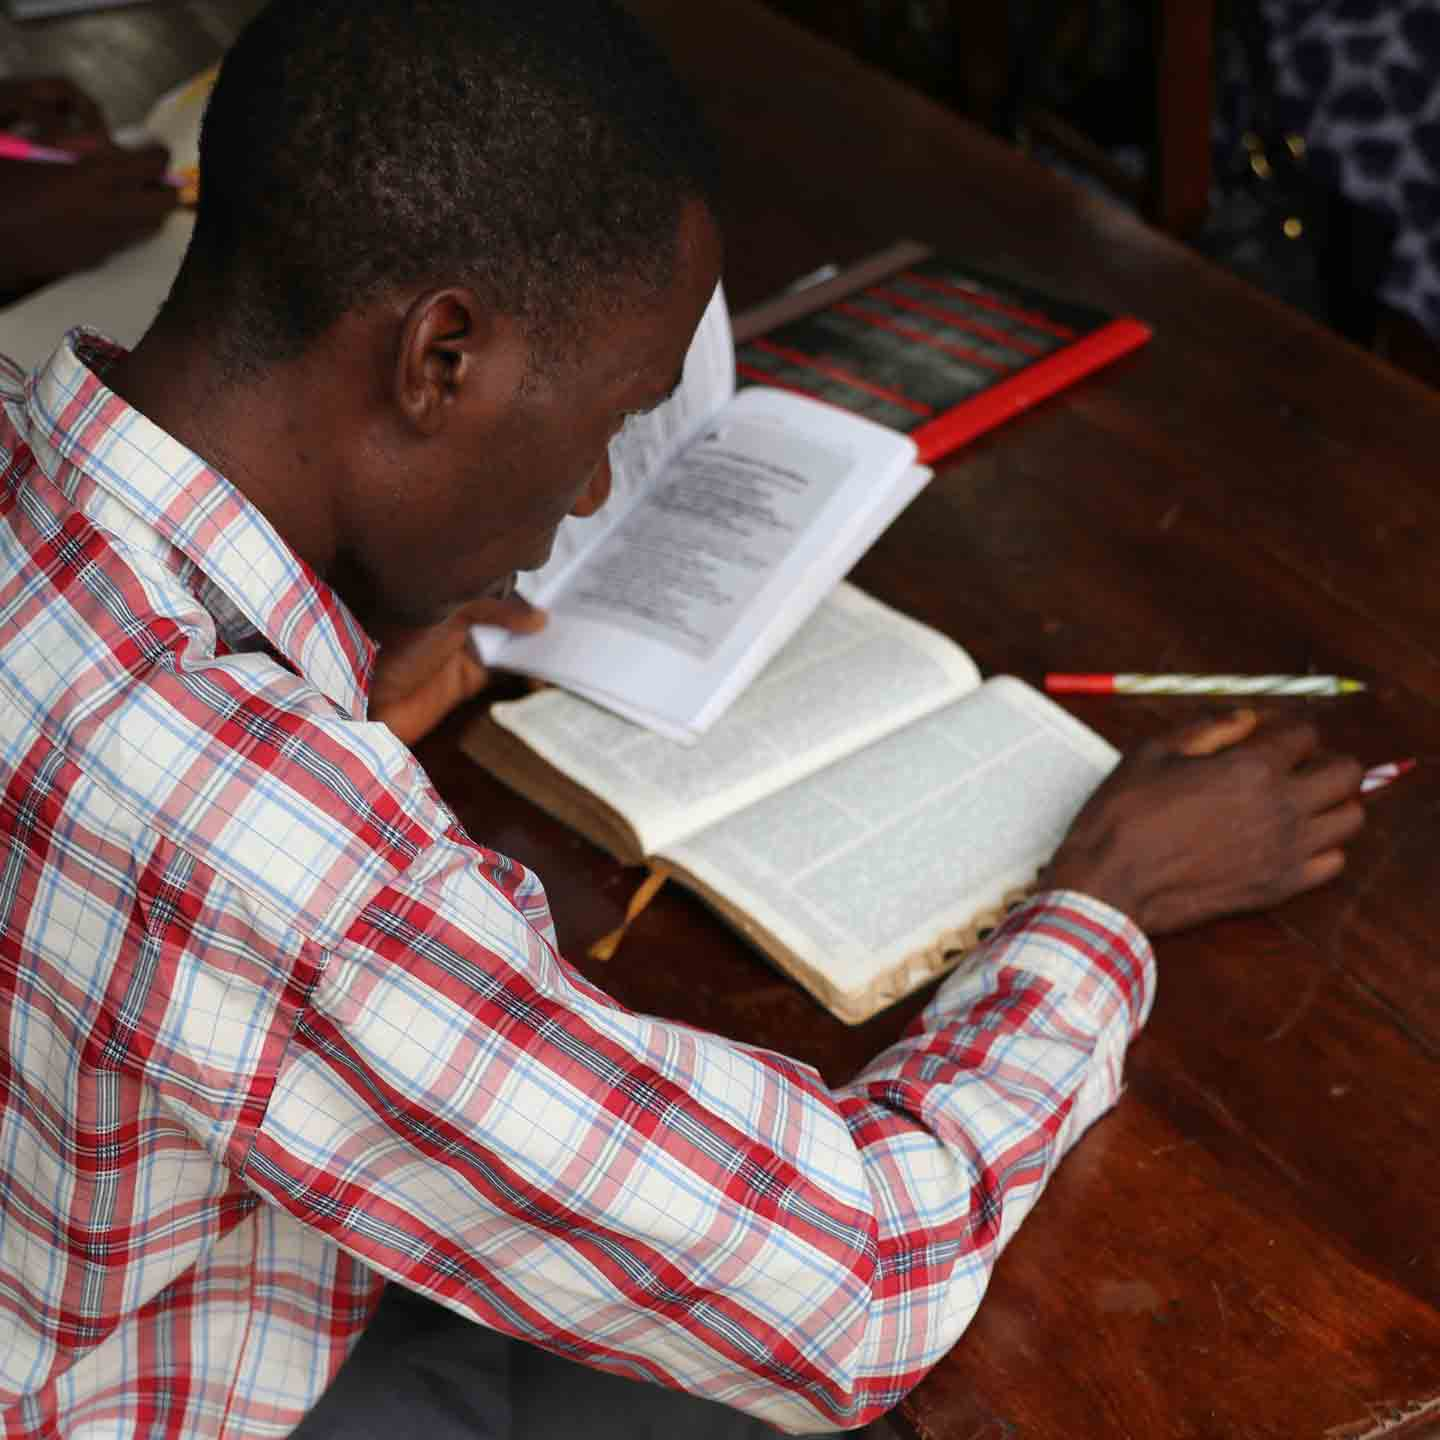 TANZANIA | SEP. 11, 2020 — Wife Discovers Young Convert's Books